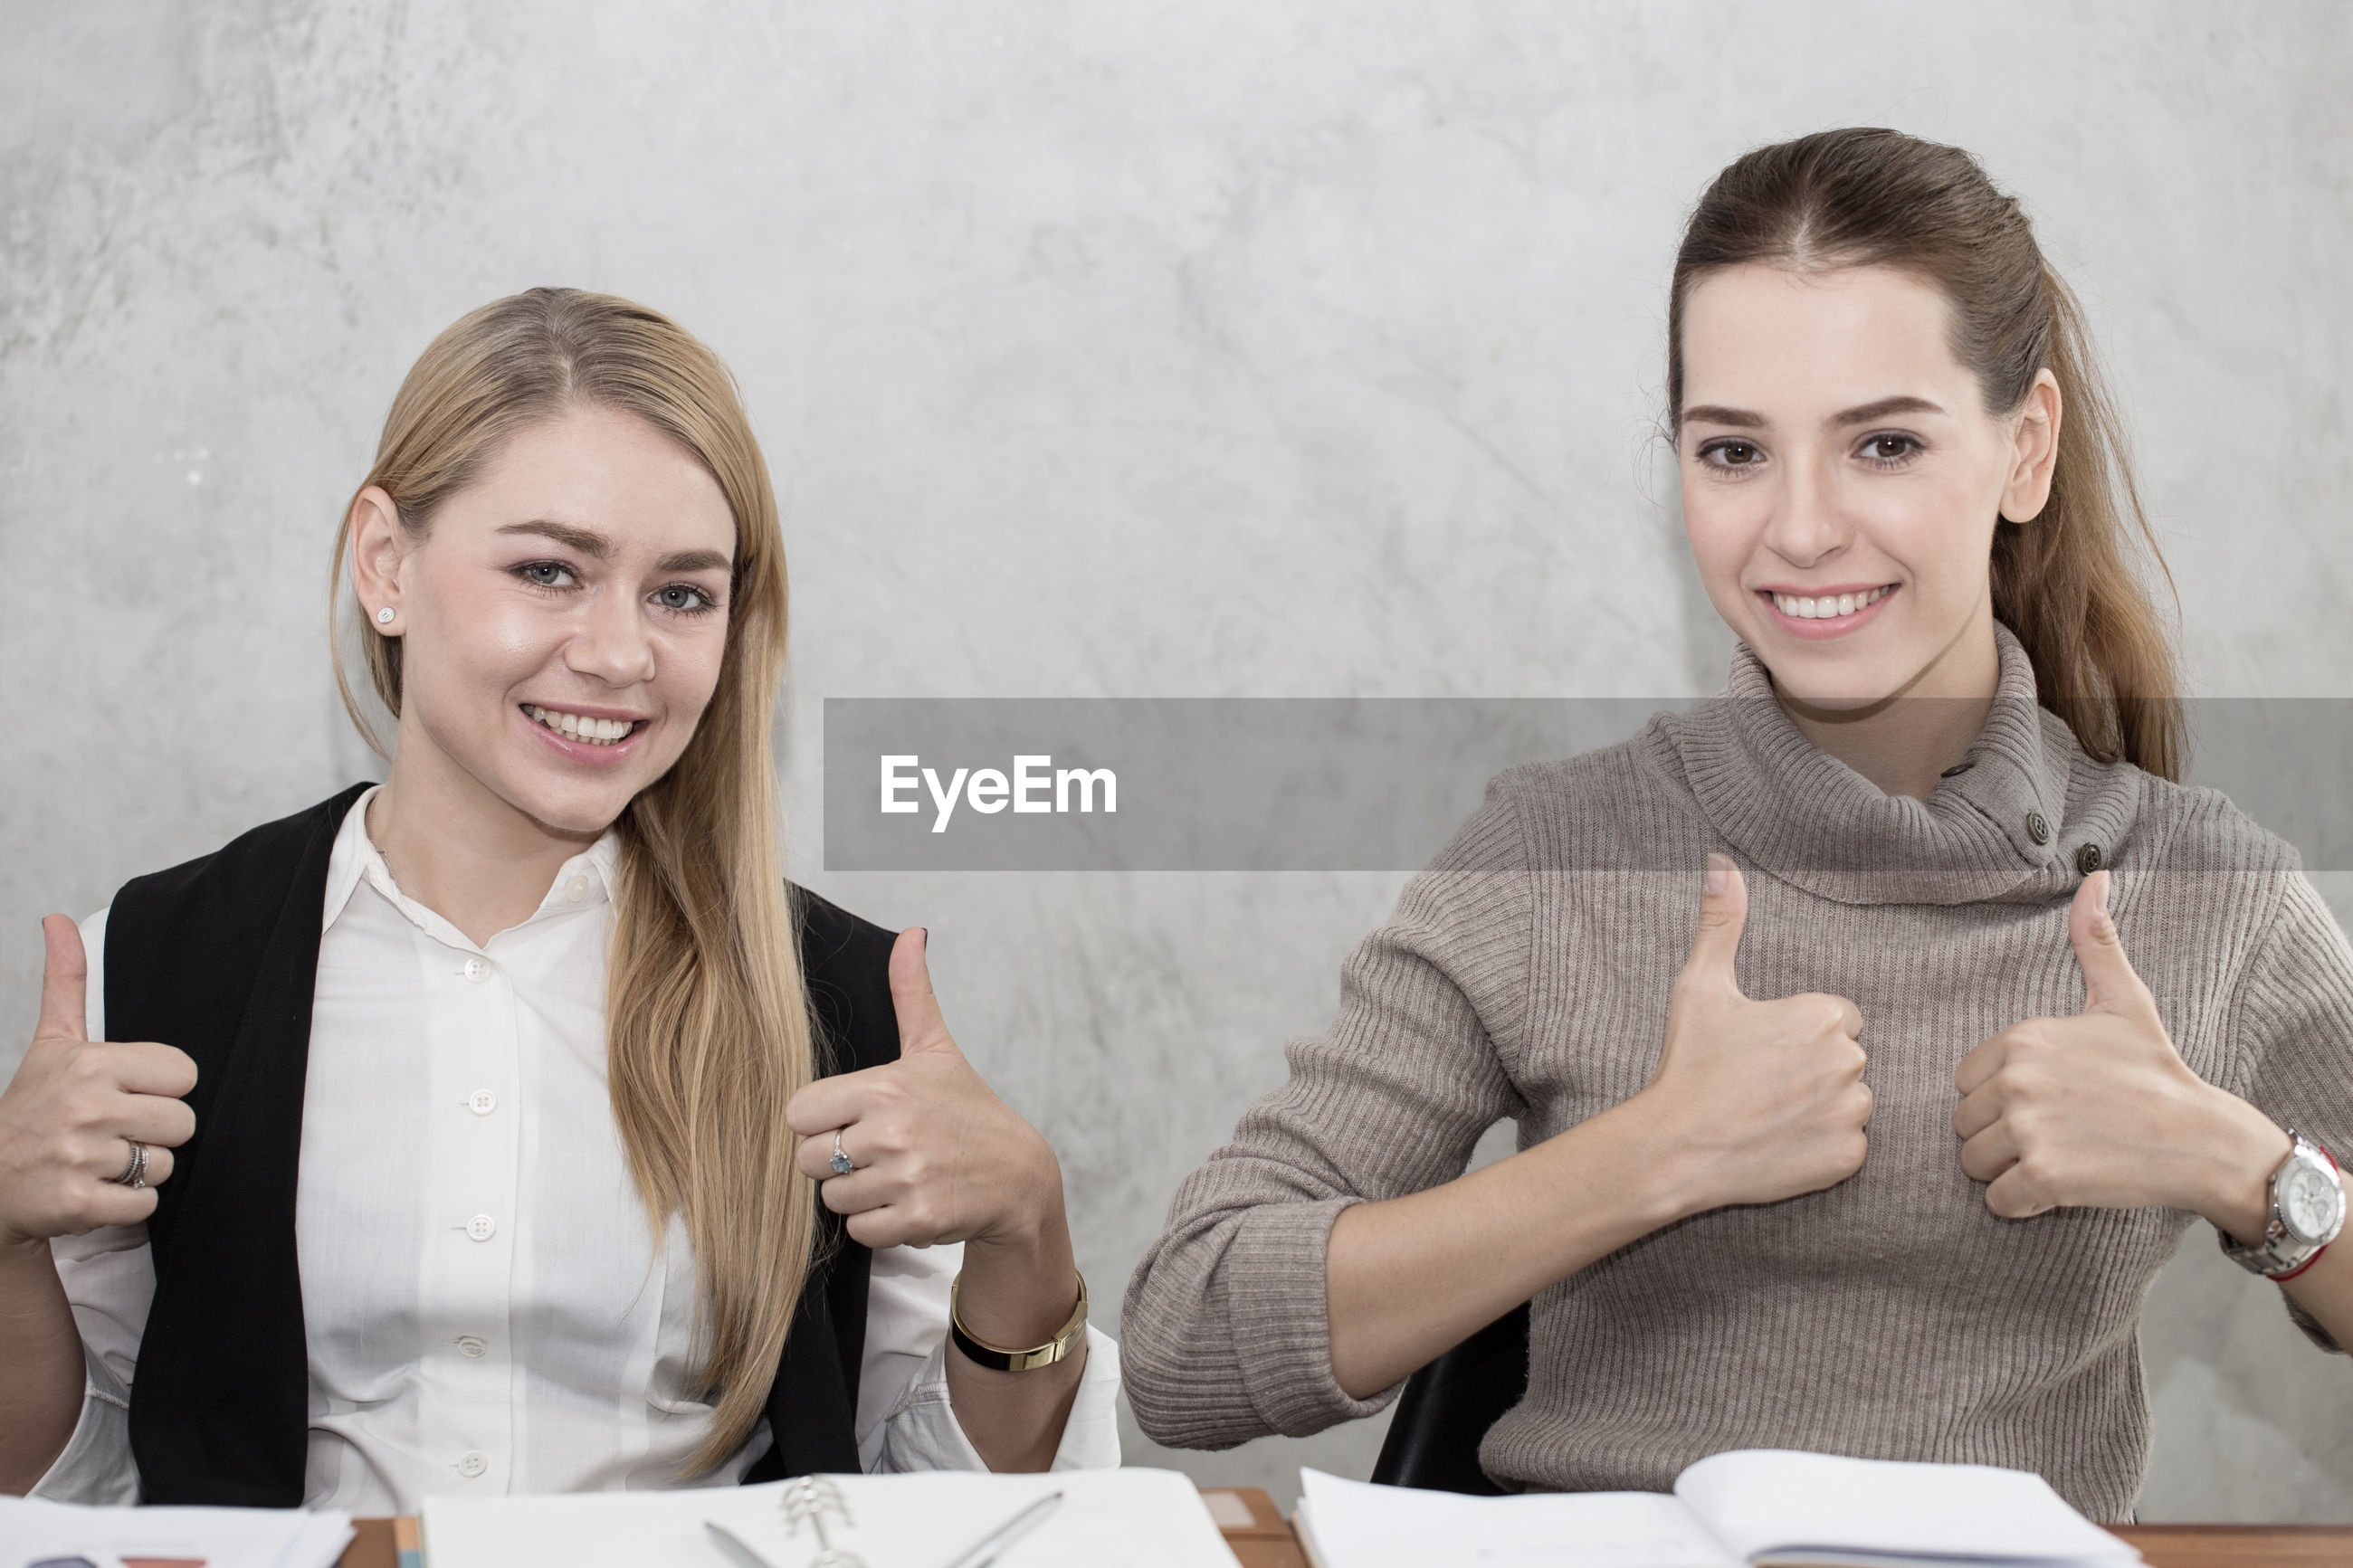 Portrait of confident businesswomen showing thumbs up while sitting at desk in office